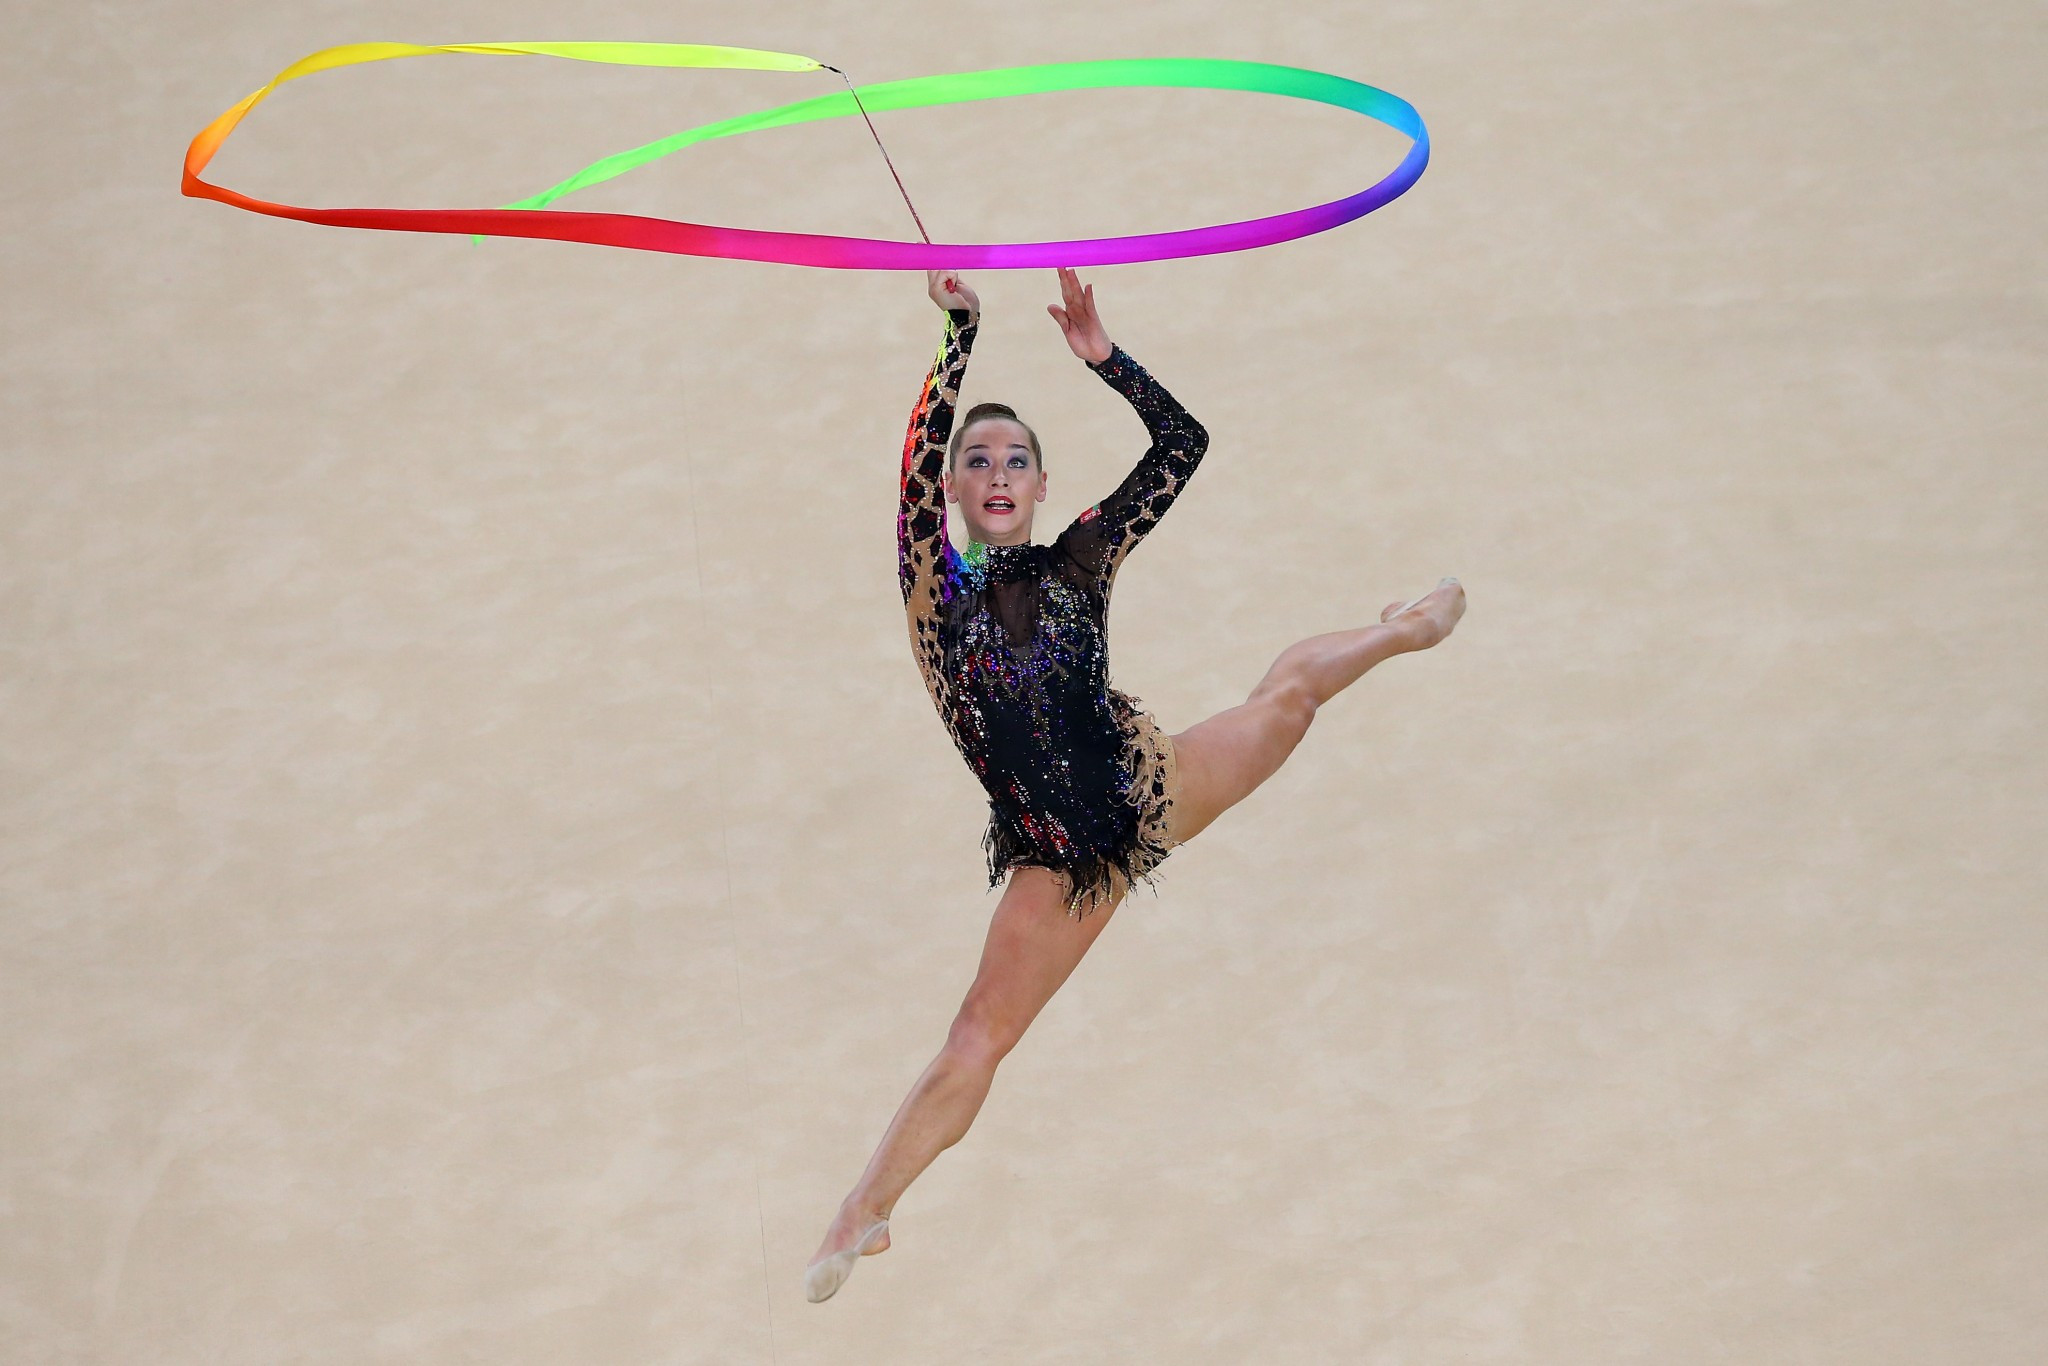 Minsk set to host latest leg of FIG World Challenge Cup